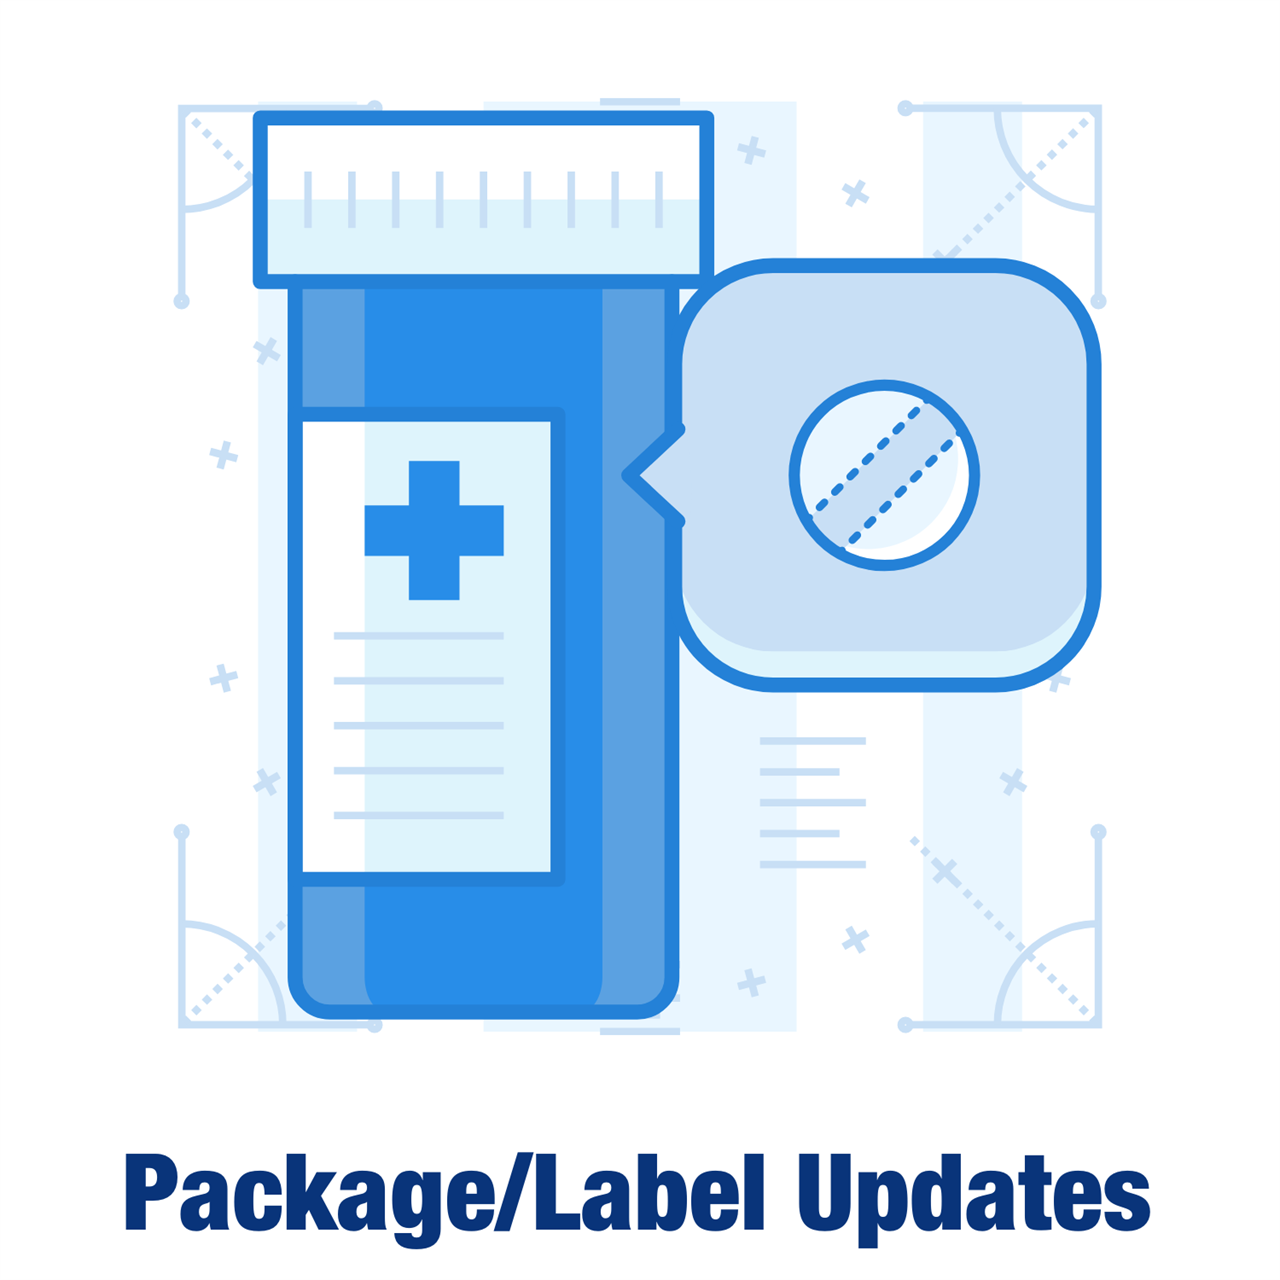 Package Label Updates